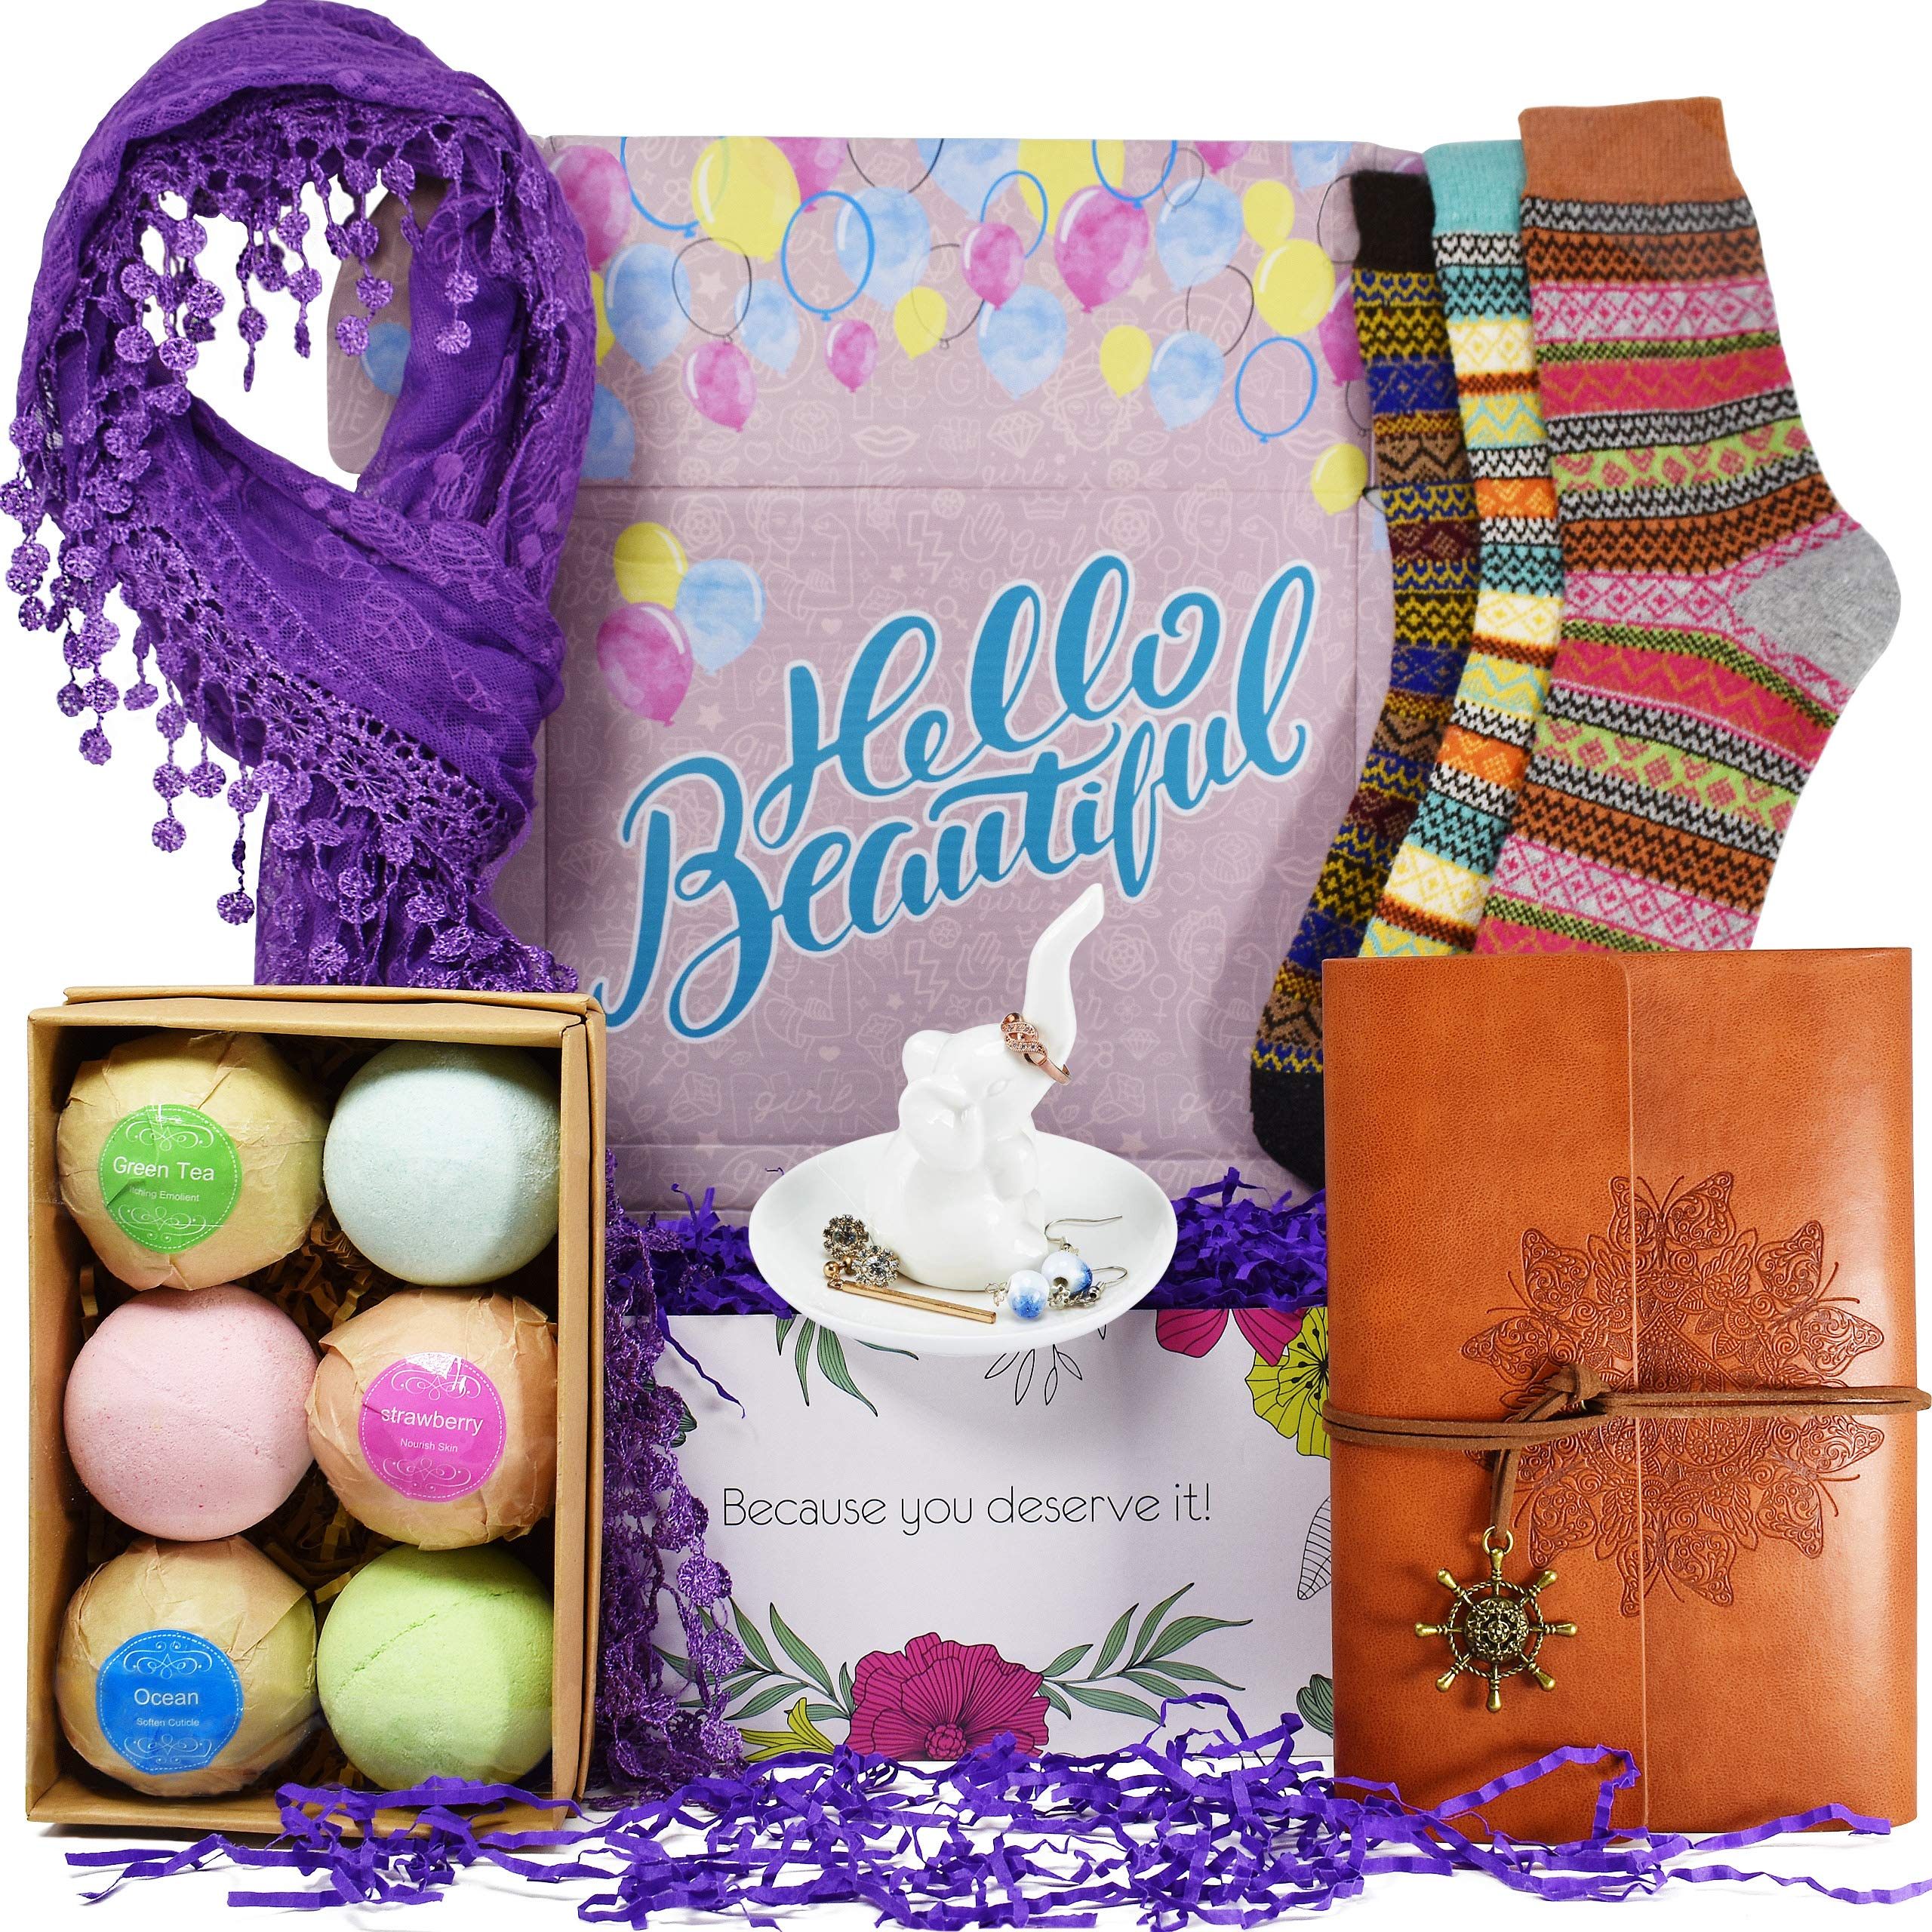 Birthday Gift Baskets for Women - Includes: Journal for Women, Ring Holders for Jewelry, Bubble Bath for Women, Warm Socks, and Womens Scarves for Wife, Friend Aunt, Sister or Daughter by The Only Gift Worth Giving